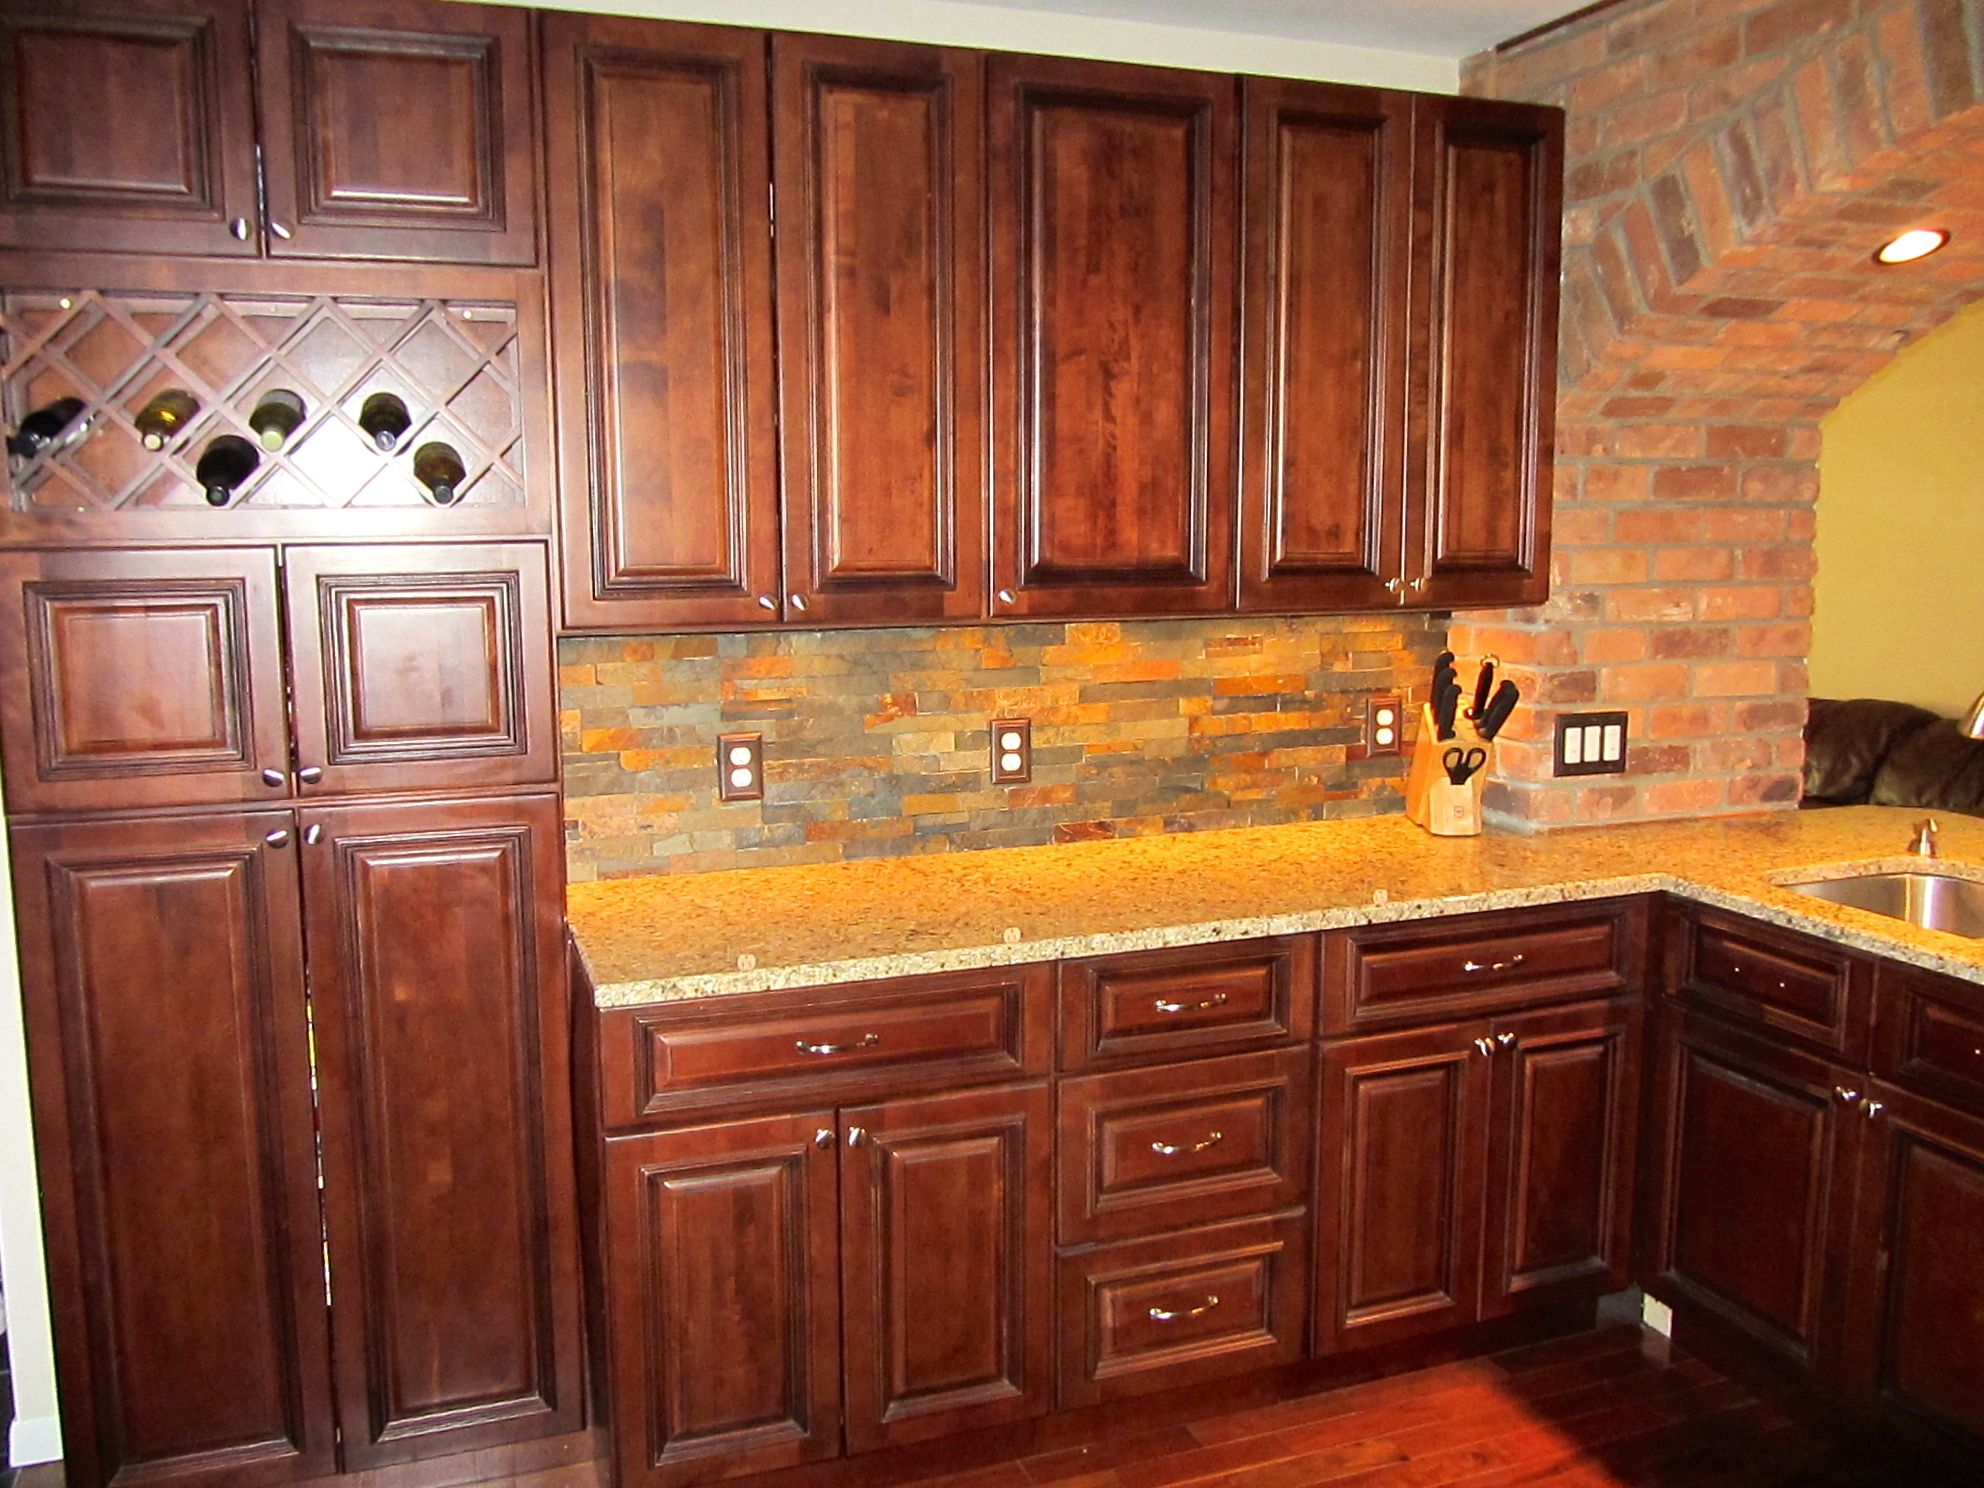 Custom Made Shallow Depth Pantry Created Using Our Brandywine Wall Cabinets Stacked On Top Of Ea Kitchen Cabinets Rta Kitchen Cabinets Maple Kitchen Cabinets